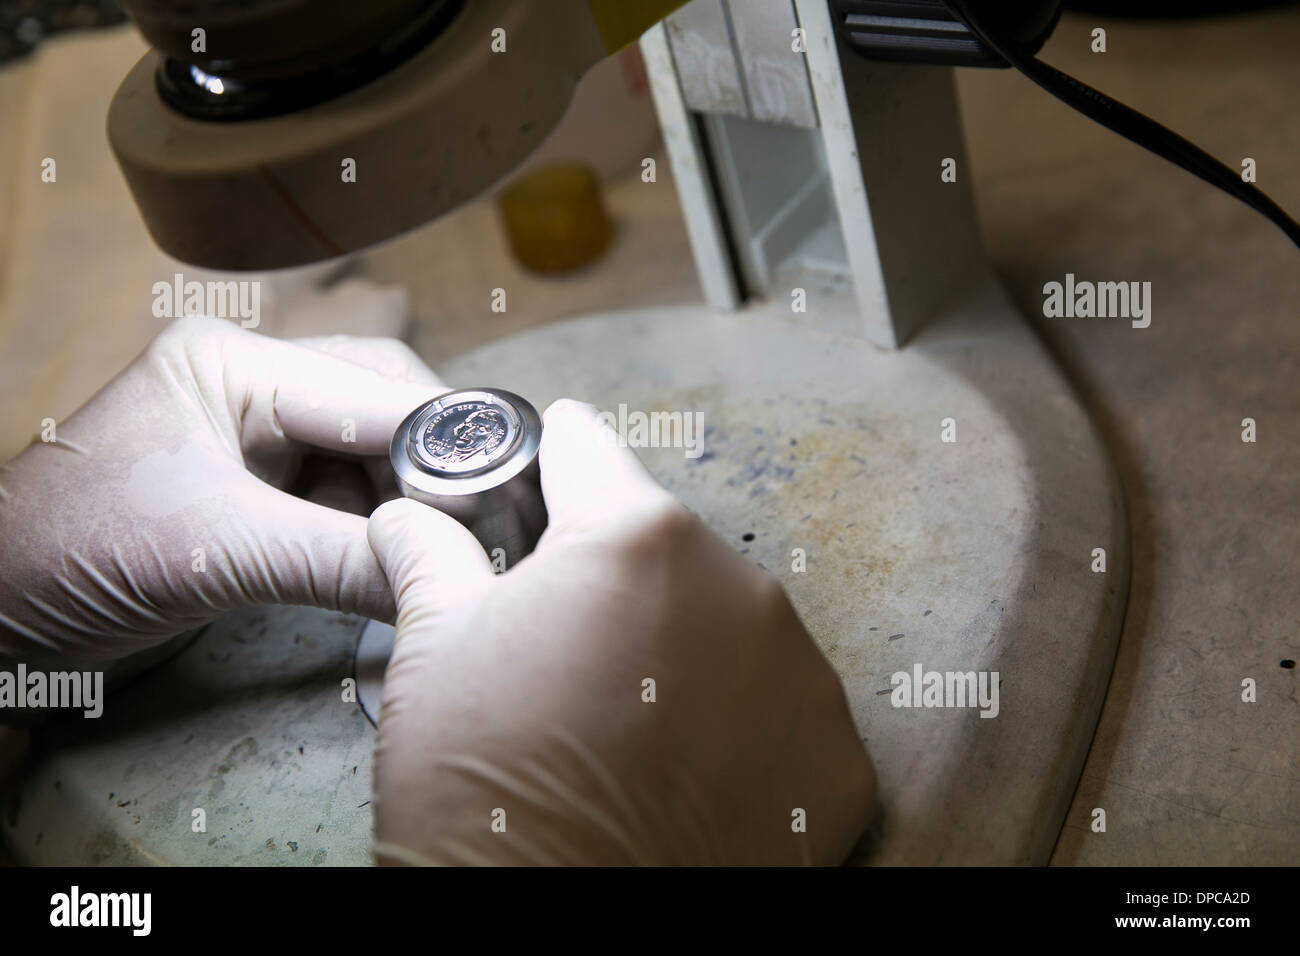 Coin die manufacturing at the Philadelphia branch of the United States Mint. - Stock Image